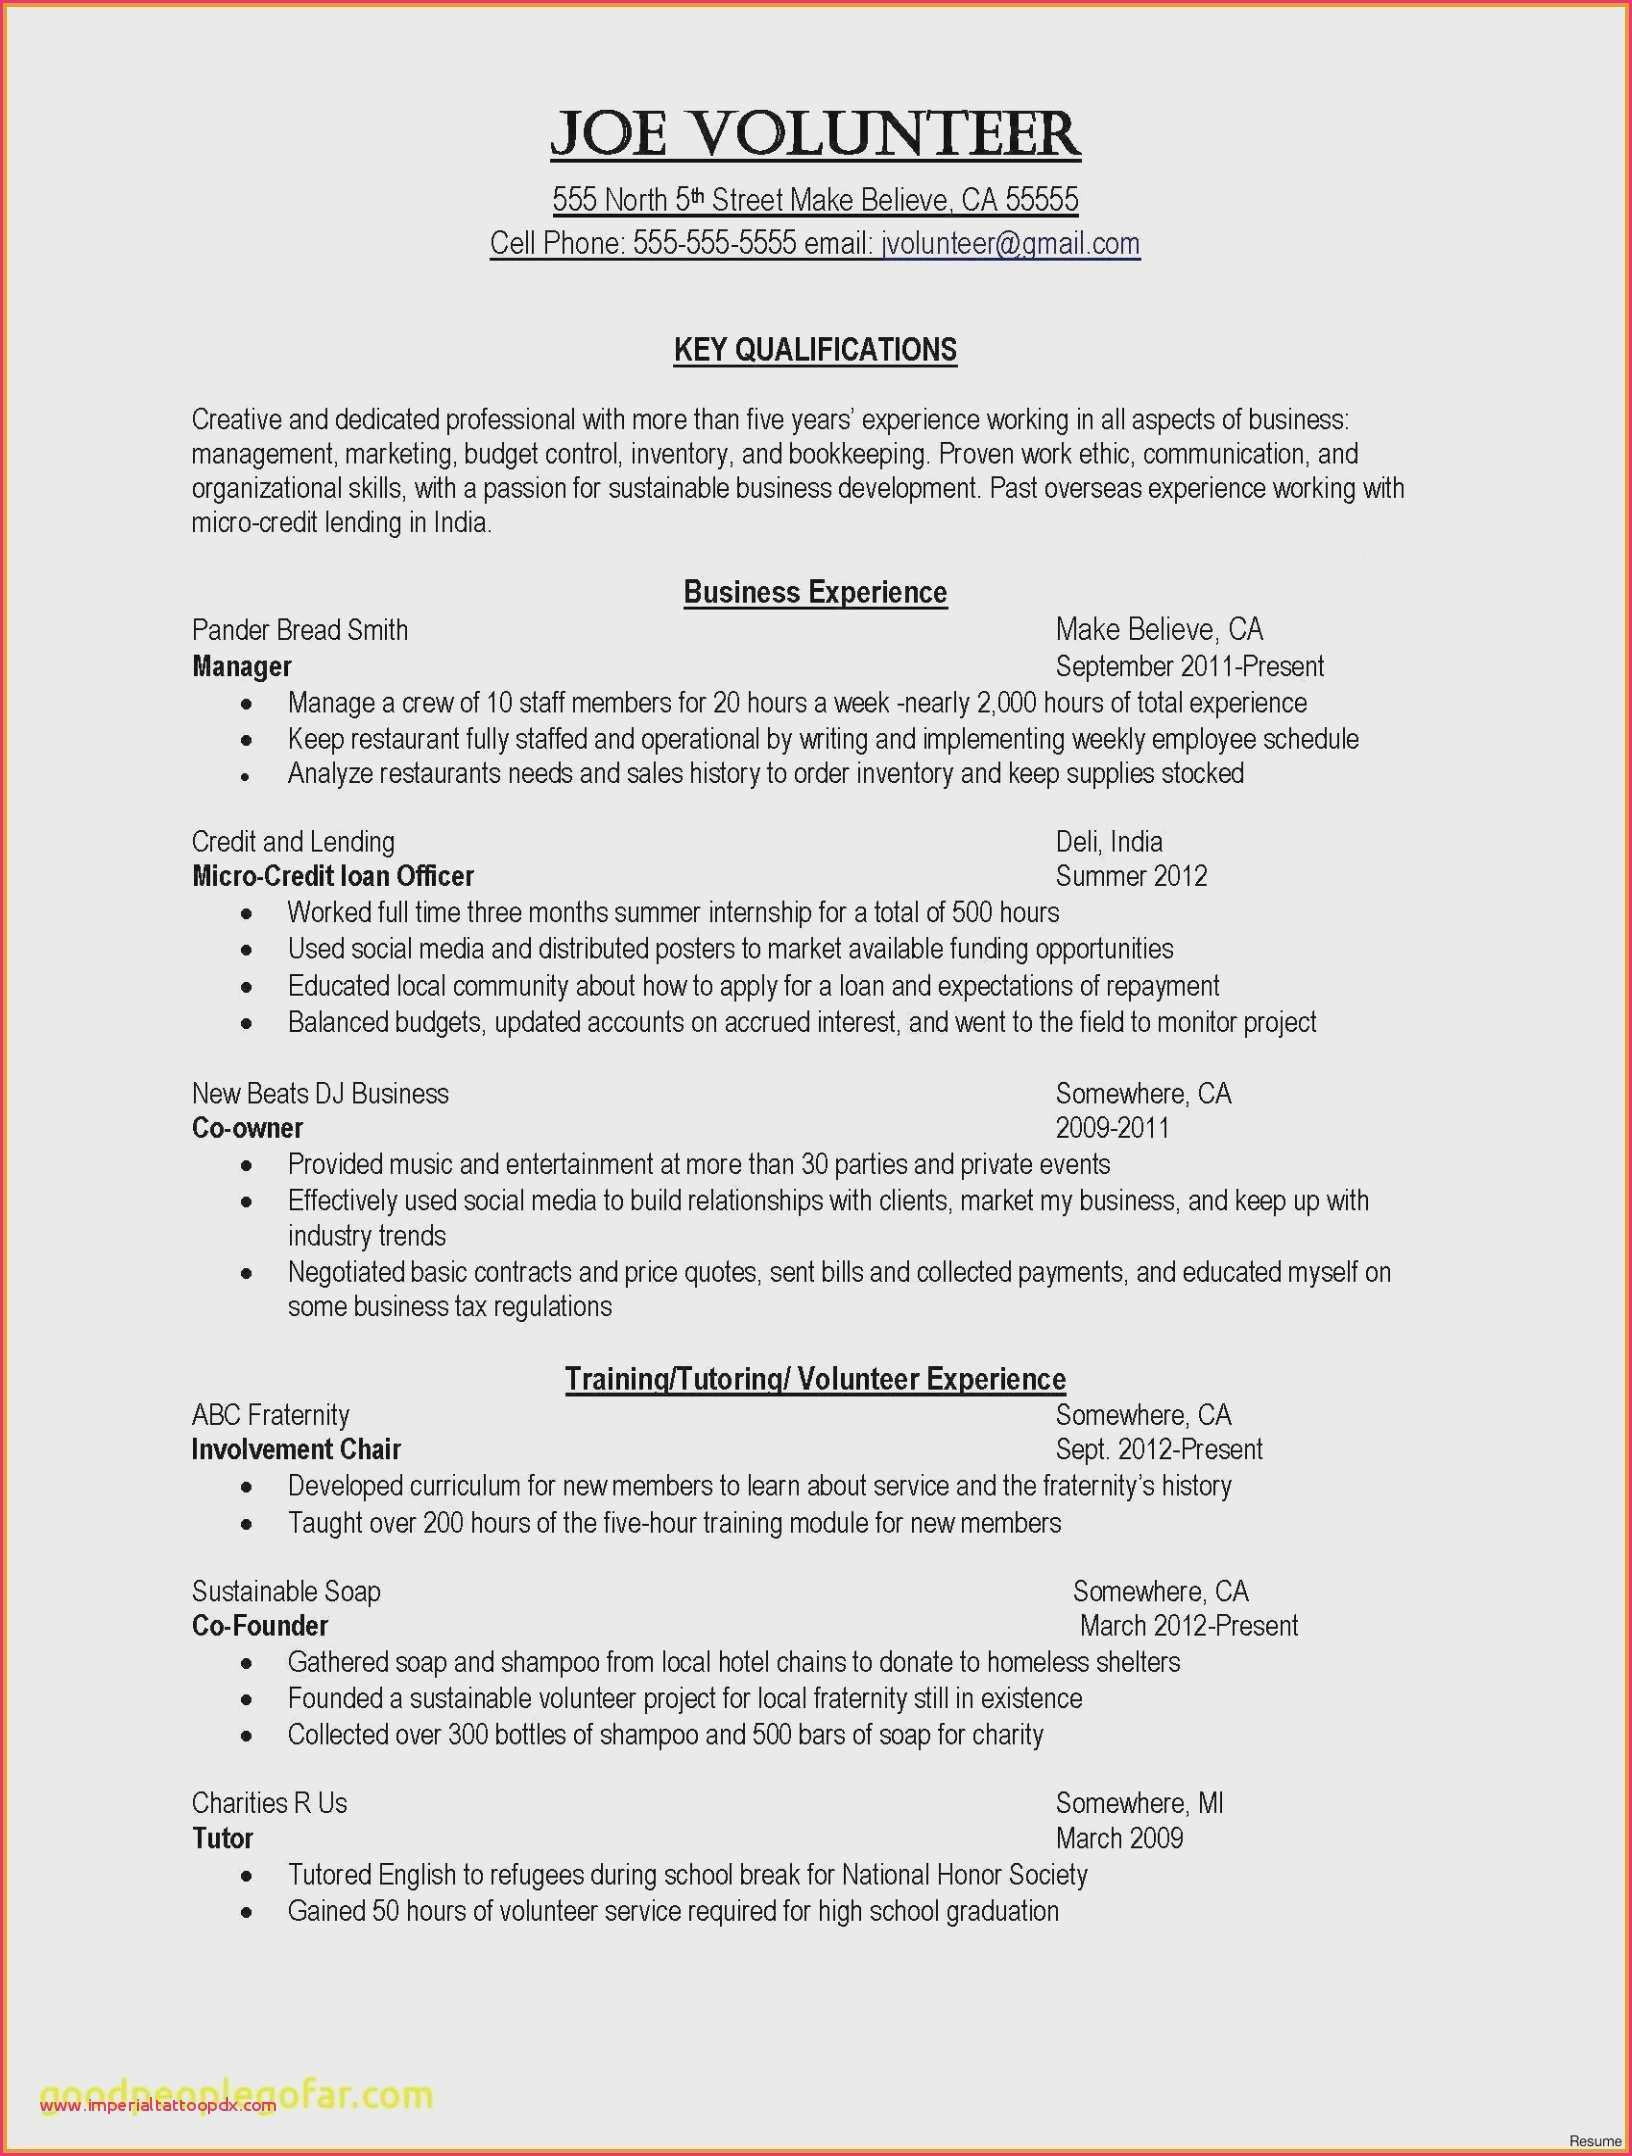 Professional Resume Layout - Free Resume Templates to Download Beautiful Fresh Pr Template